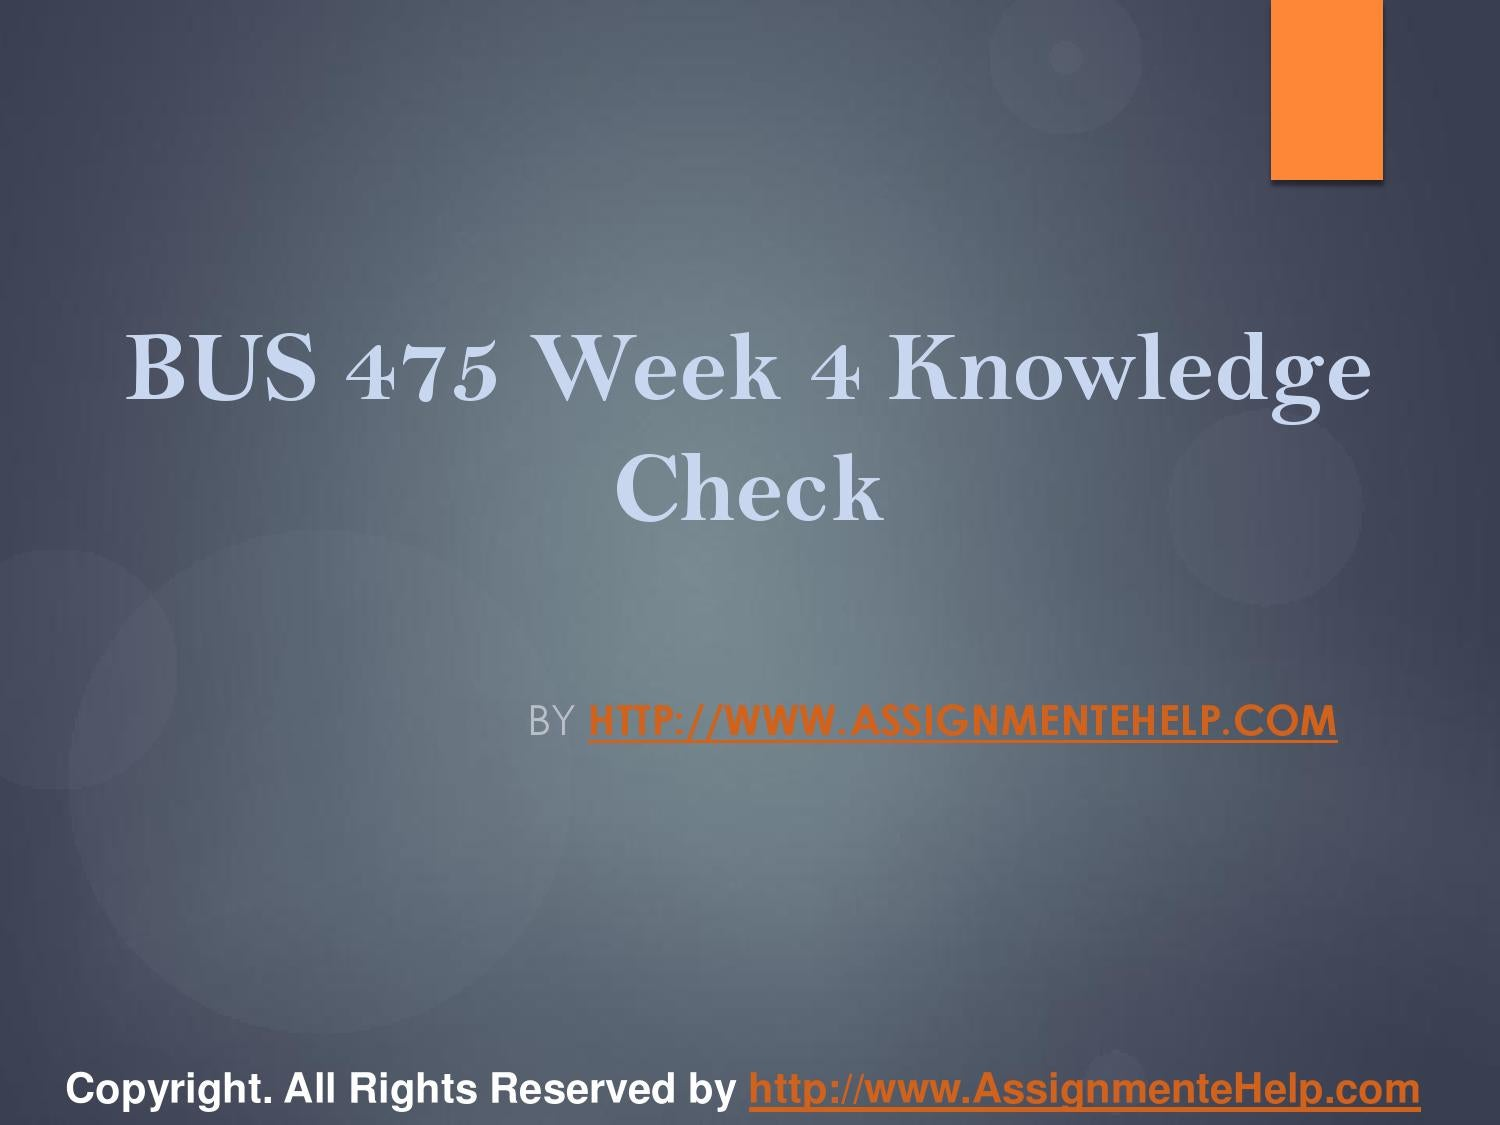 NSG6420 - WEEK 6 KNOWLEDGE CHECK